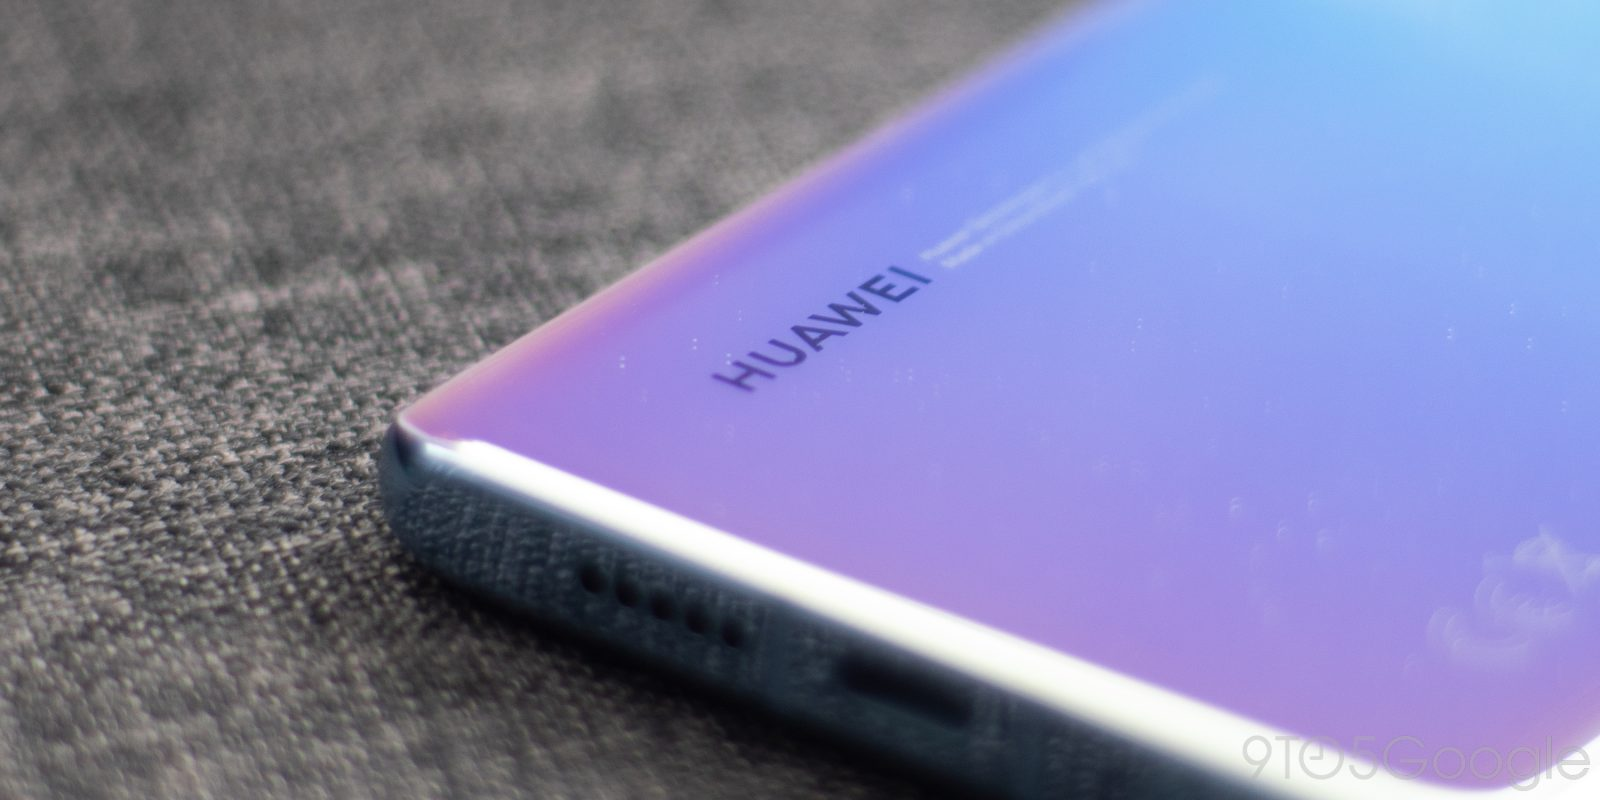 EMUI 10 leak shows off an early look at Huawei's take on Android Q